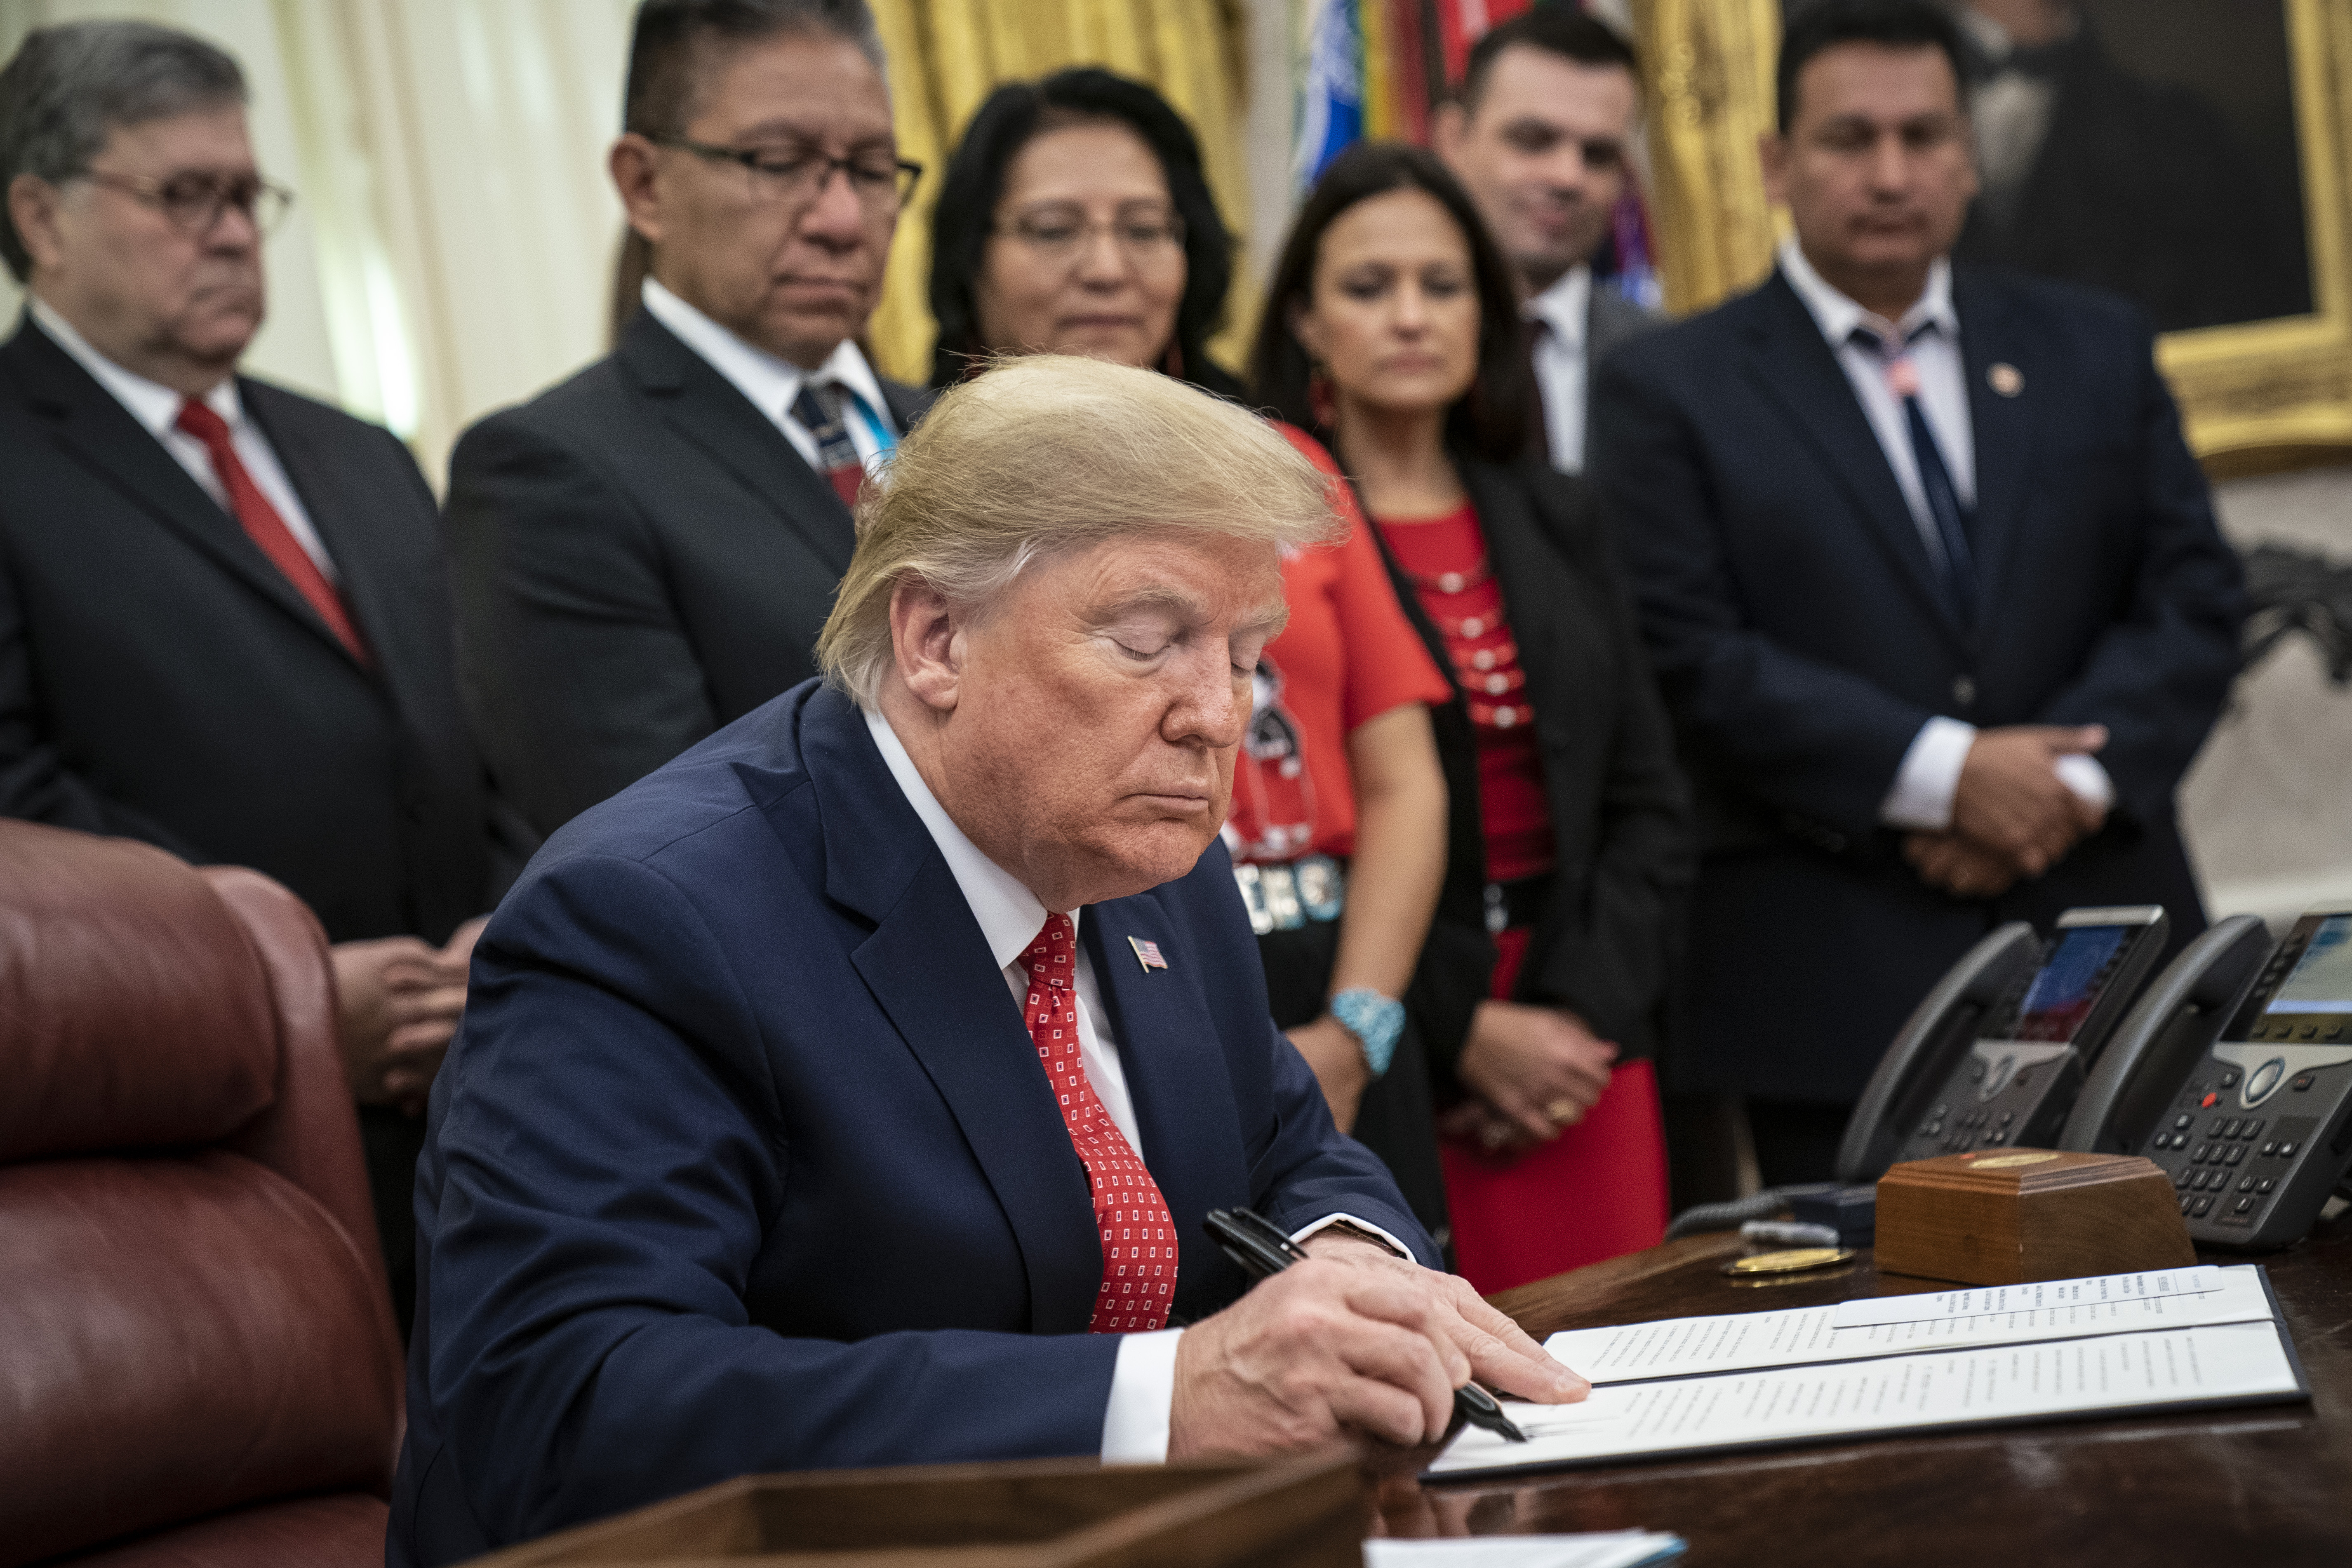 U.S. President Donald Trump signs an executive order establishing the Task Force on Missing and Murdered American Indians and Alaska Natives in the Oval Office of the White House on November 26, 2019. (Drew Angerer/Getty Images)